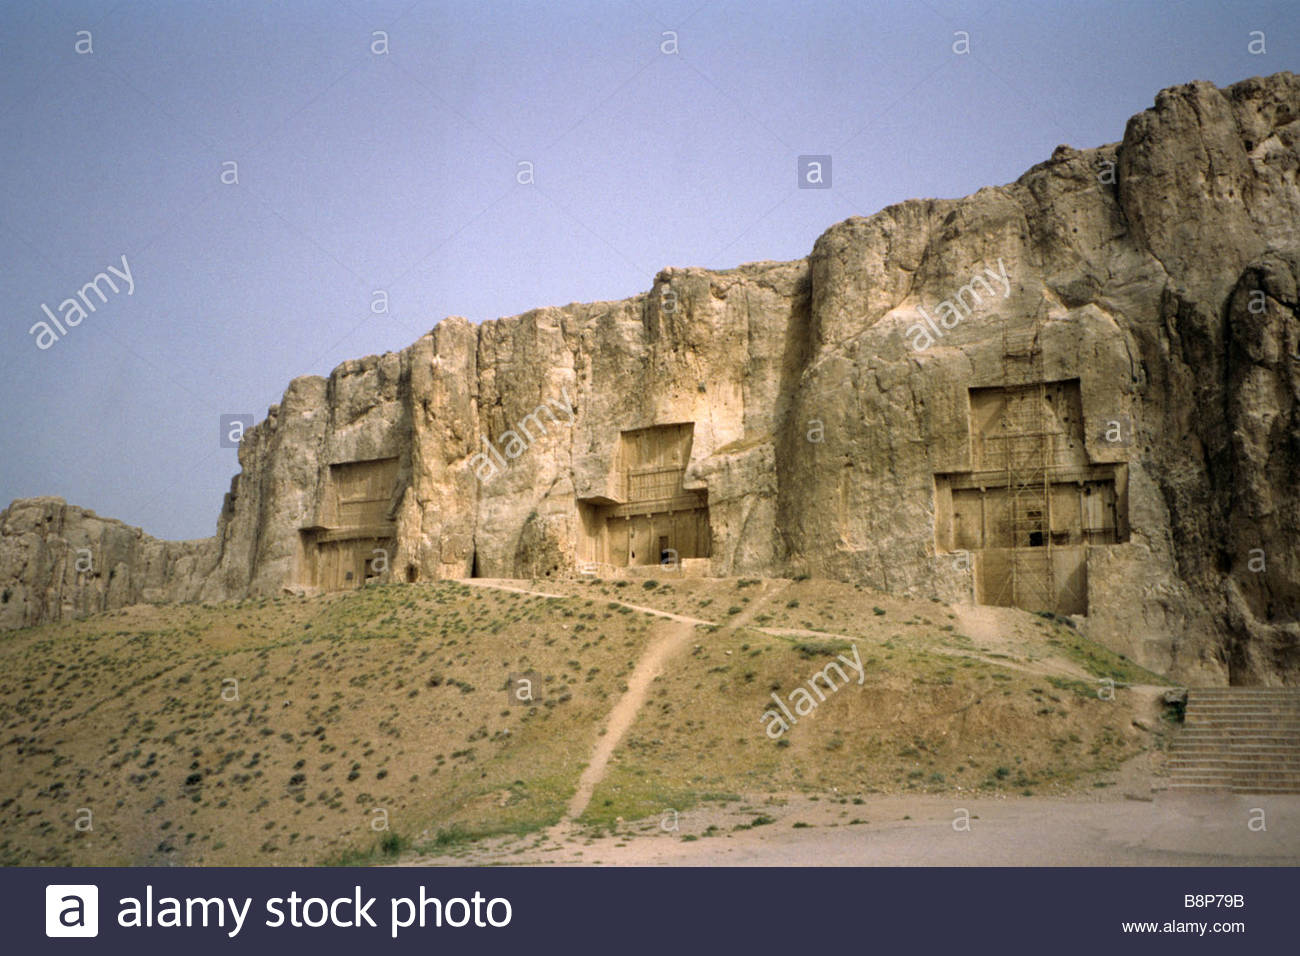 the archeological site of persepolis, iran - Stock Image